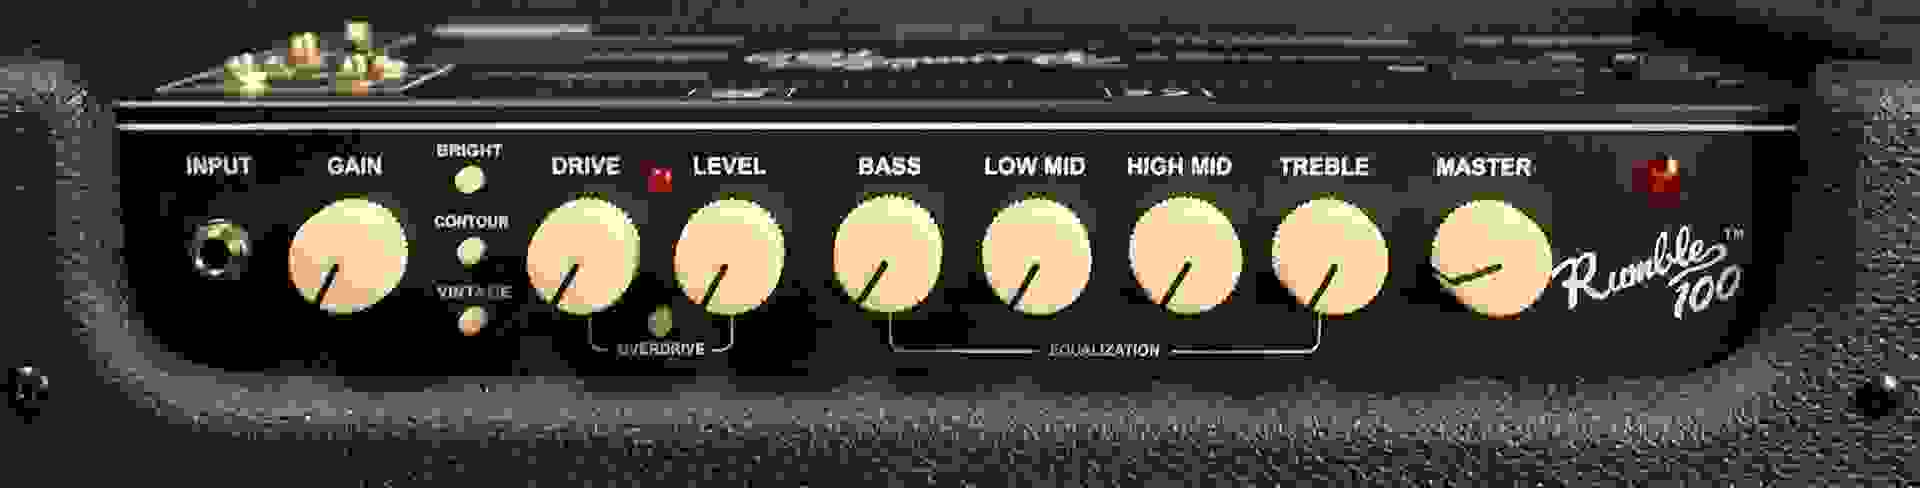 fender rumble 100 controls.JPG